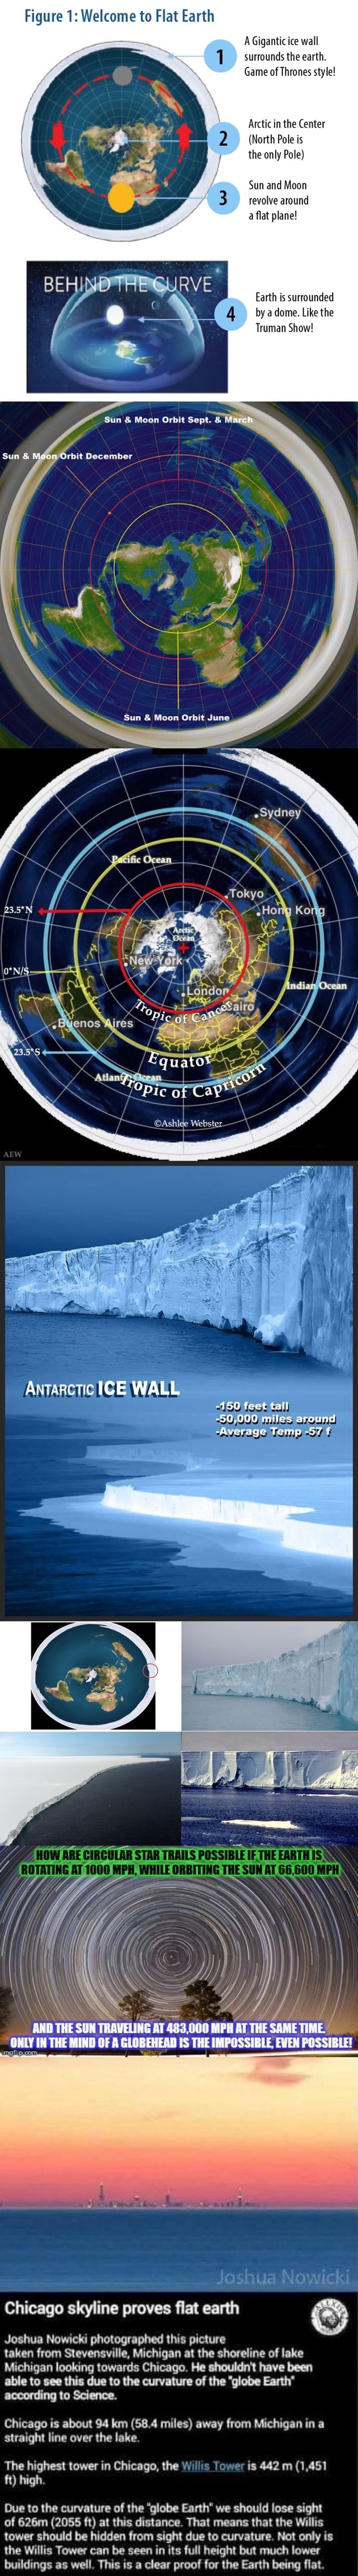 Figure 1 Welcome to Flat Earth A Gigantic ice wall 1 surrounds the earth Game of Thrones style Arctic in the Center North Pole is the only Pole Sun and Moon revolve around a flat plane Earth is surrounded by a dome. Like the Truman Show Sun Moon Orbit Sept. March Sun Moon Orbit December Sun and Moon Orbit June Ns Pic quatot pic of Webster NALL tall miles around Temp pet f ANT THE SUN TRAVEUING AT MPH AT HE SAME IN THE MIND OF IS THEIMPOSSIBLE EVEN POSSIBLE Chicago skyline proves flat earth Joshua Nowicki photographed this picture according to Science. ft high. Joshua Nowicki taken from Stevensville, Michigan at the shoreline of lake Michigan looking towards Chicago He shouldn't have been able to see this due to the curvature of the globe Earth Chicago is about 94 km 58.4 miles away from